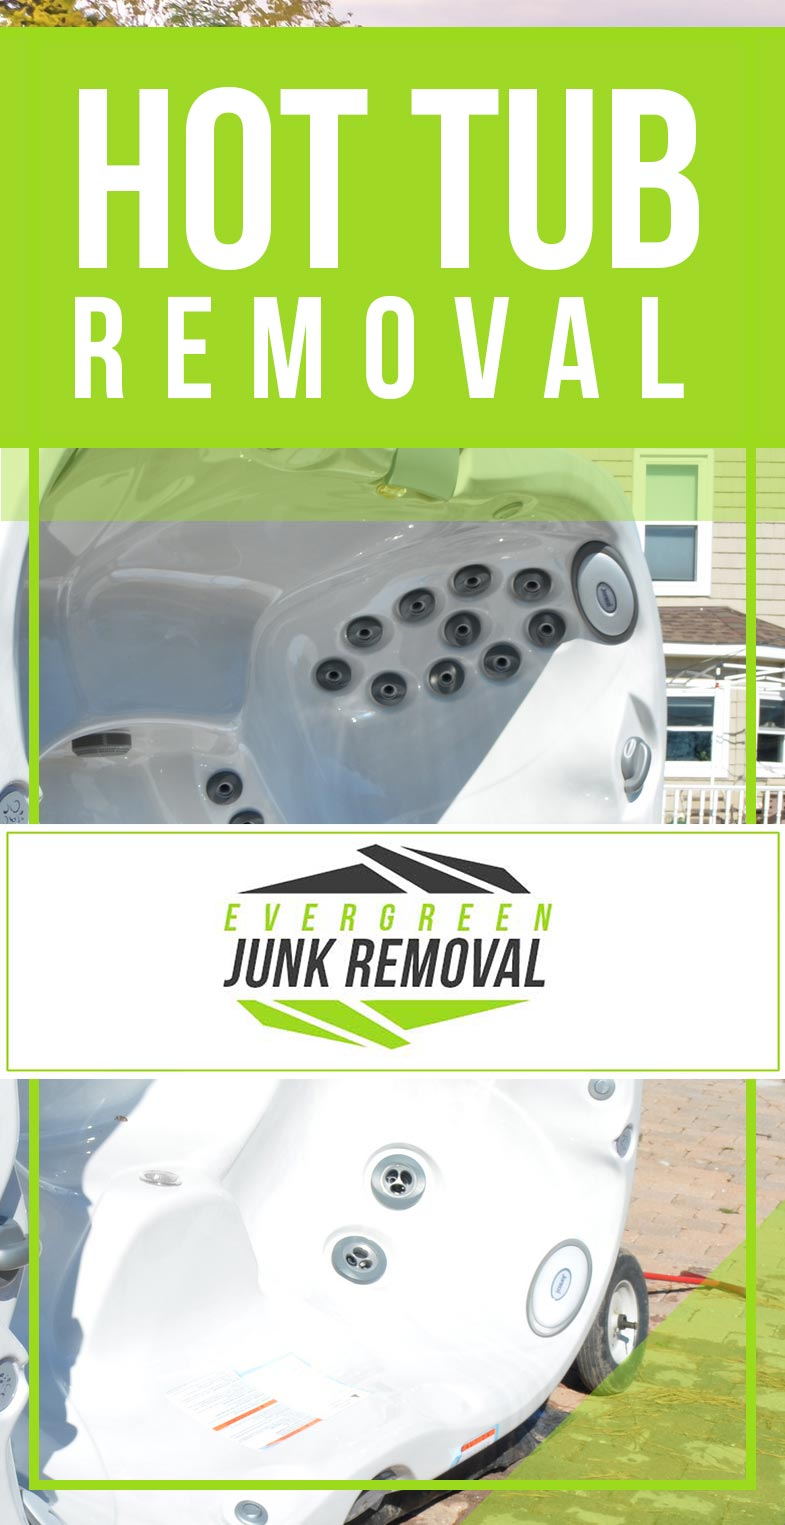 Junk Removal Gulf Stream Hot Tub Removal